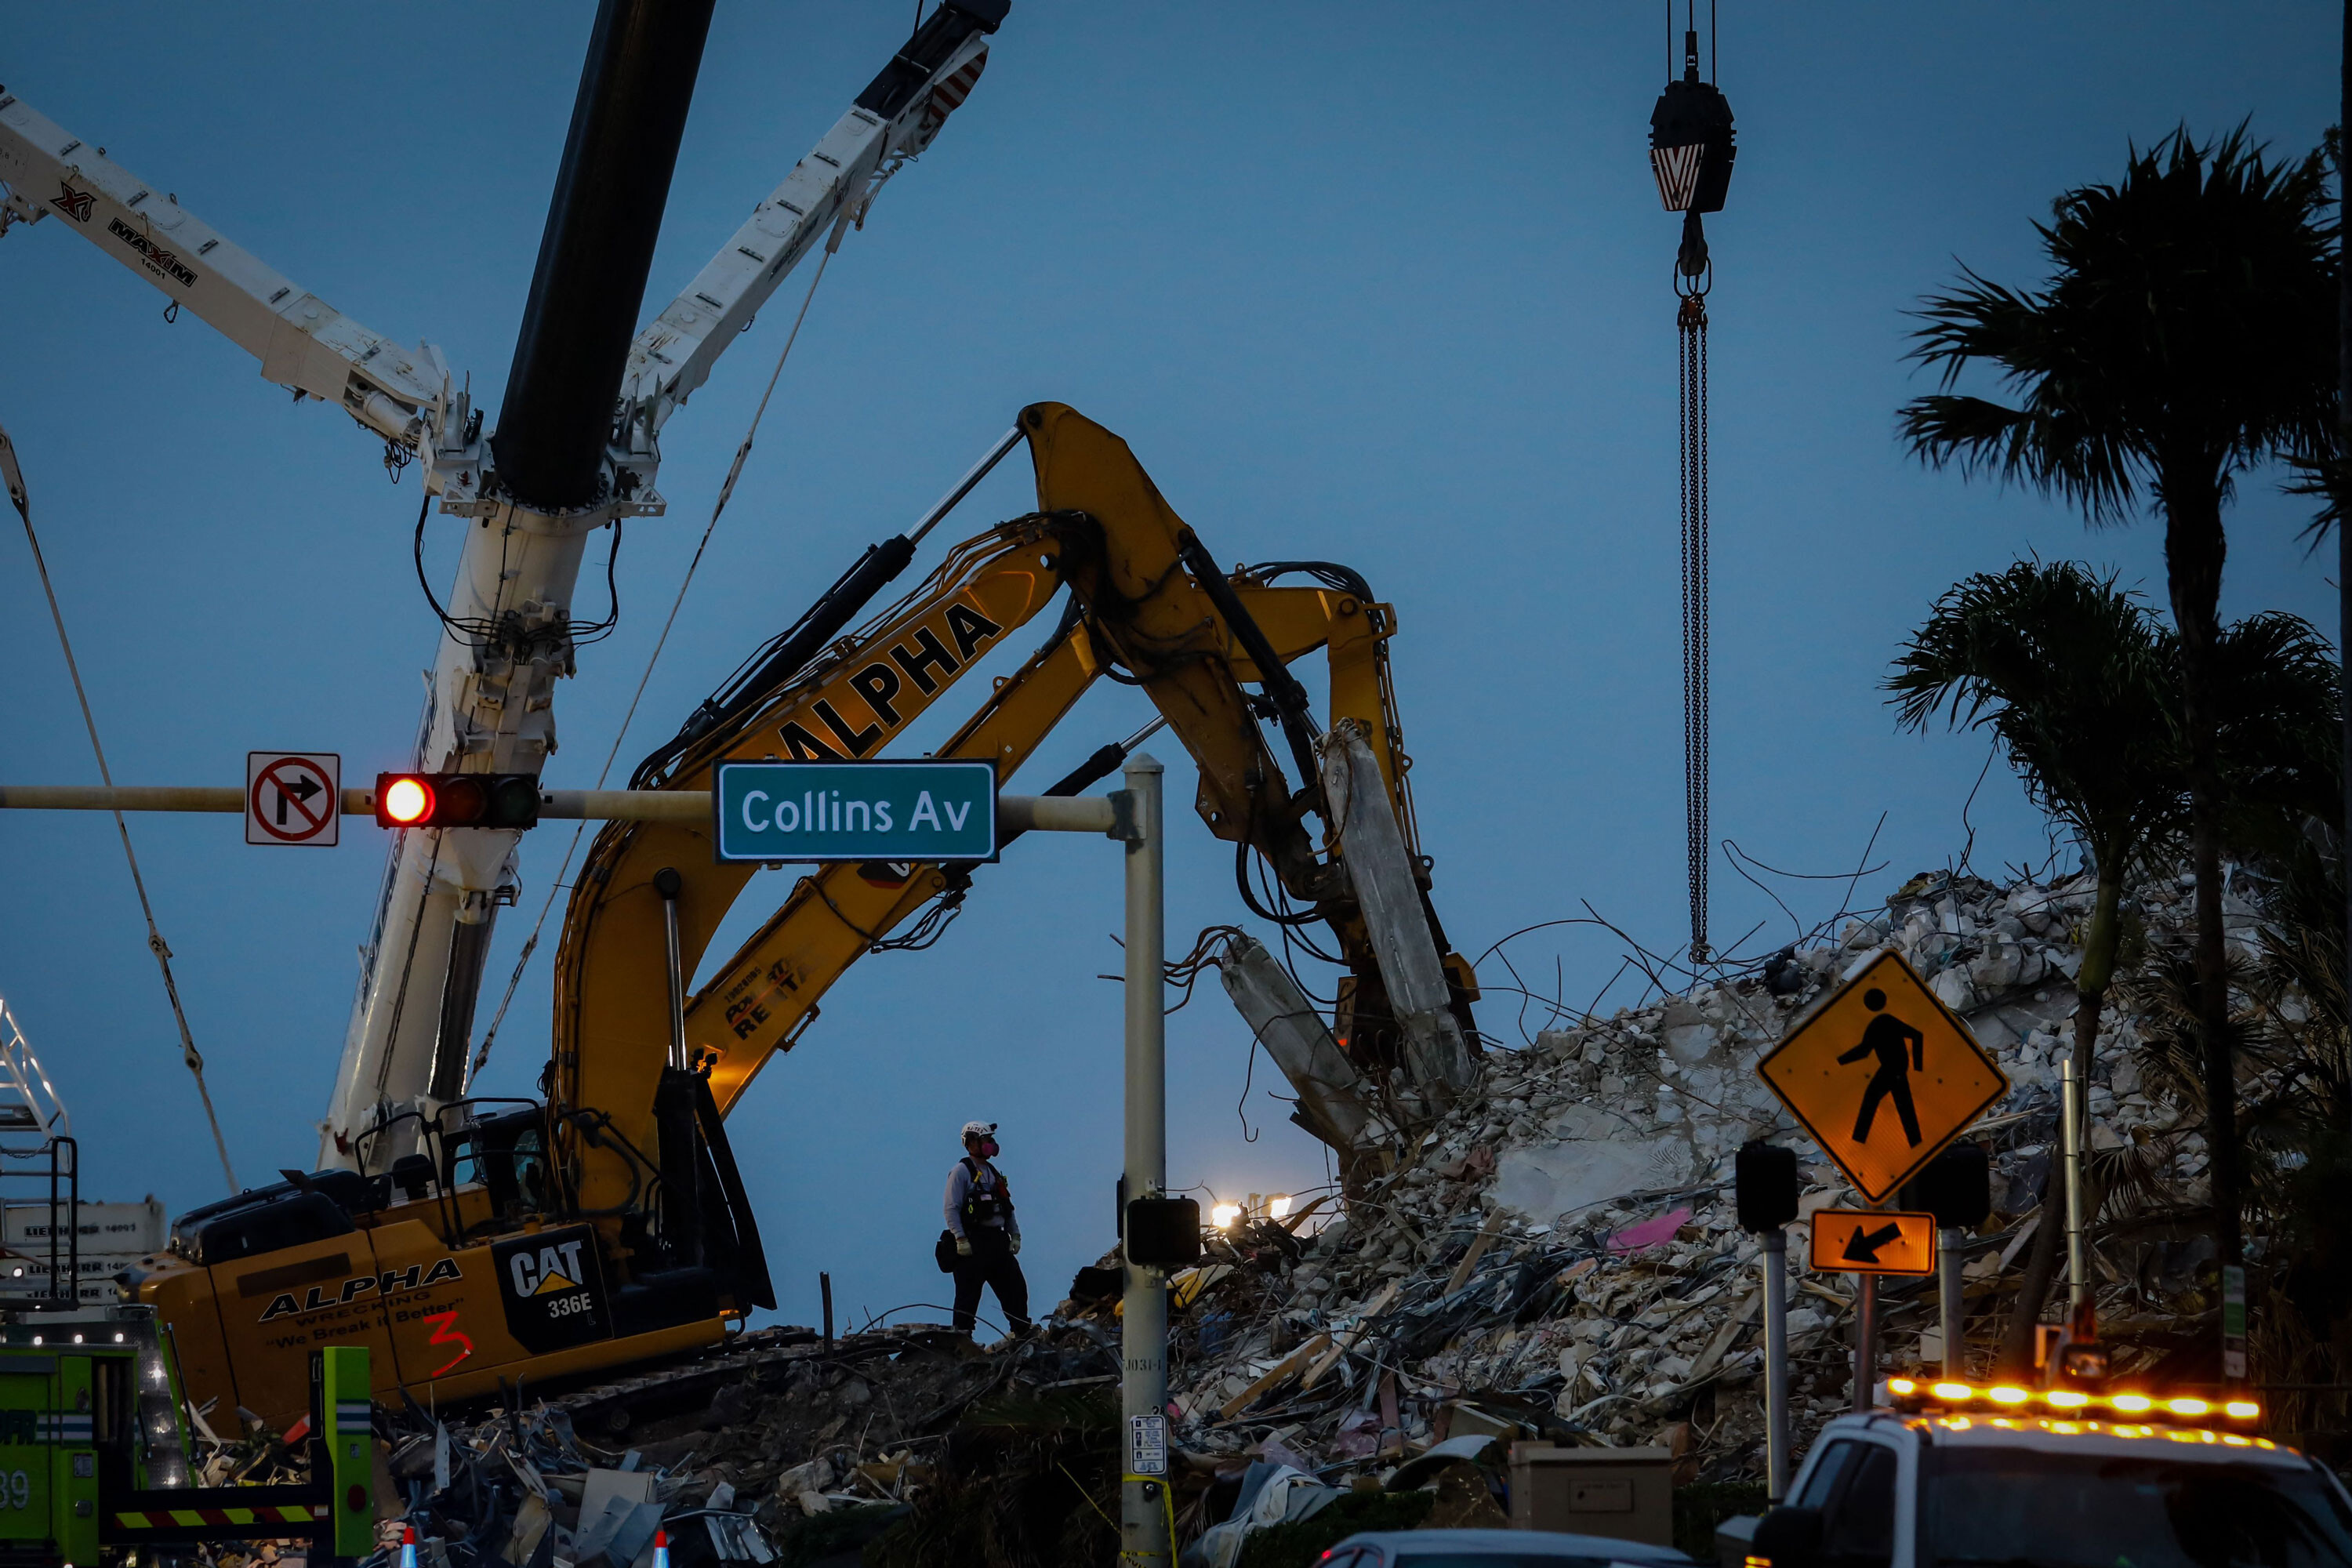 Death toll rises to 86 as recovery teams battle inclement weather at Surfside collapse site